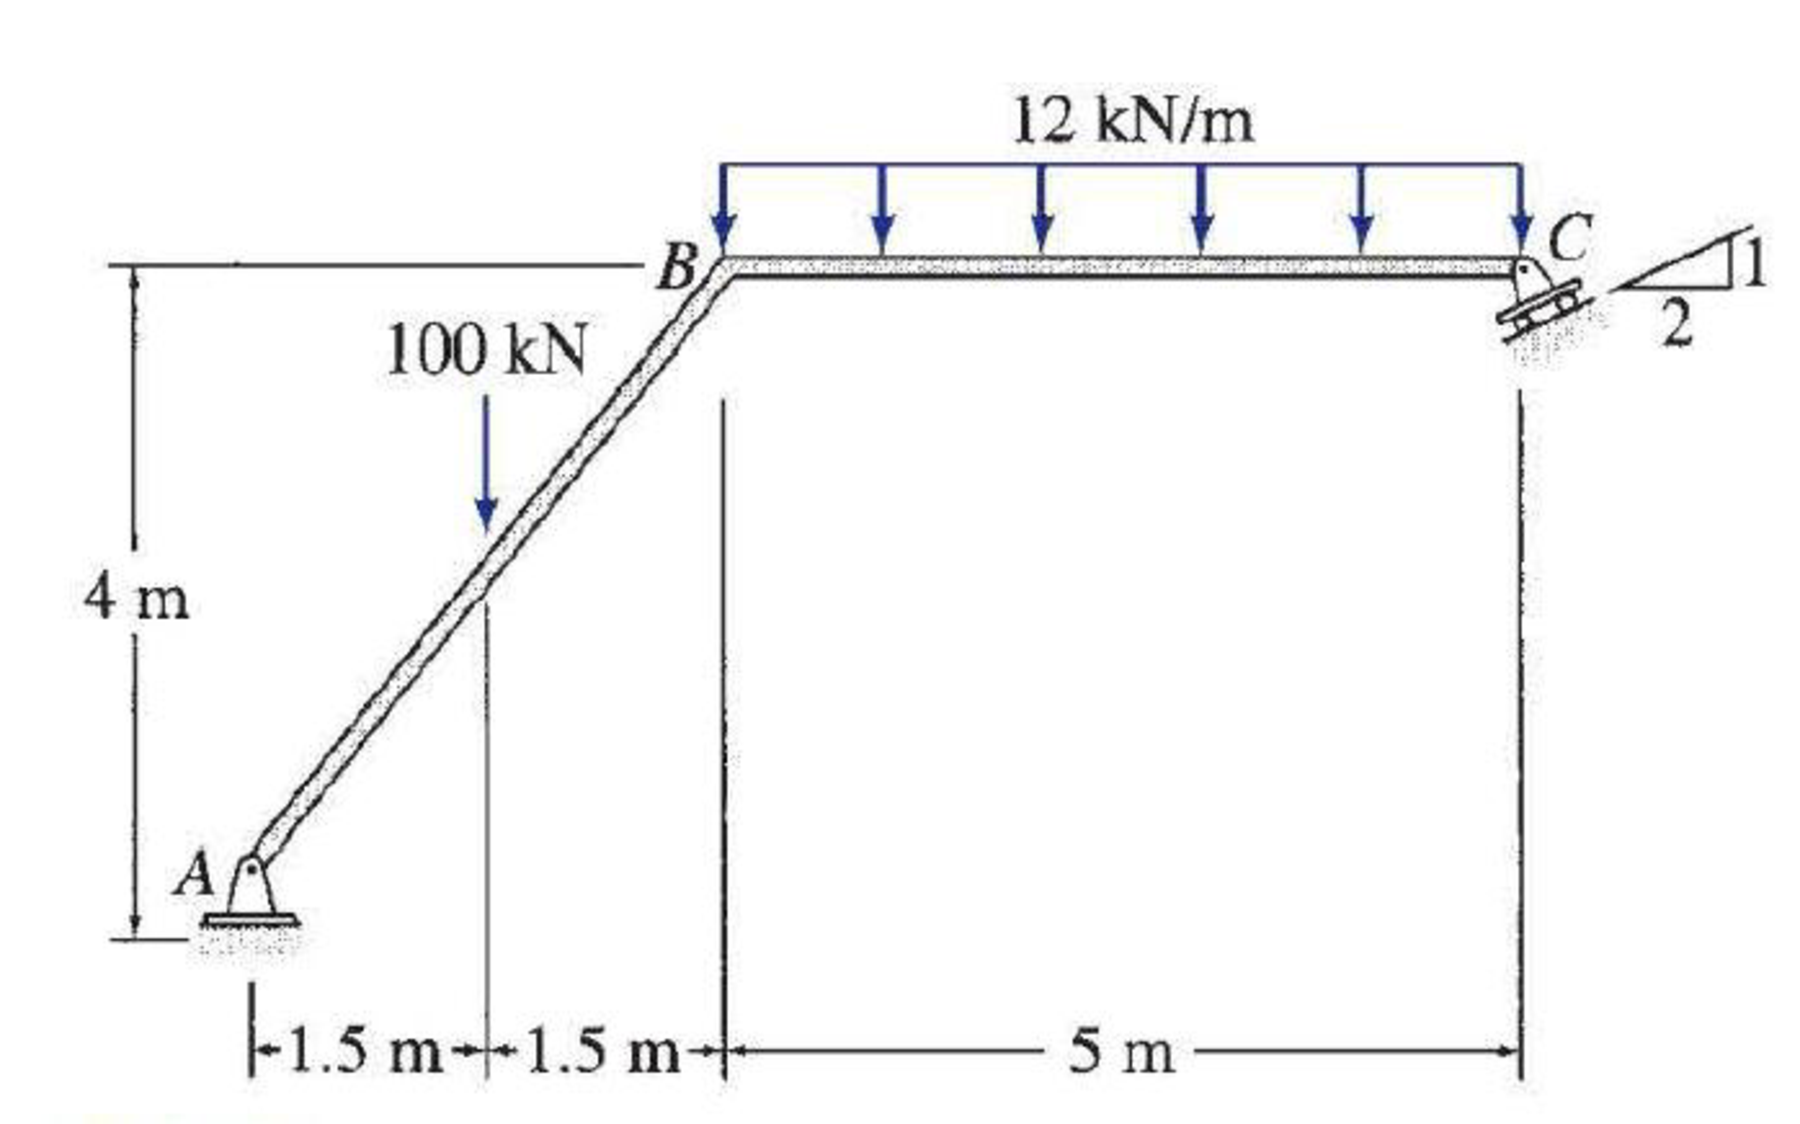 Chapter 5, Problem 59P, Draw the shear, bending moment, and axial force diagrams and the qualitative deflected shape for the